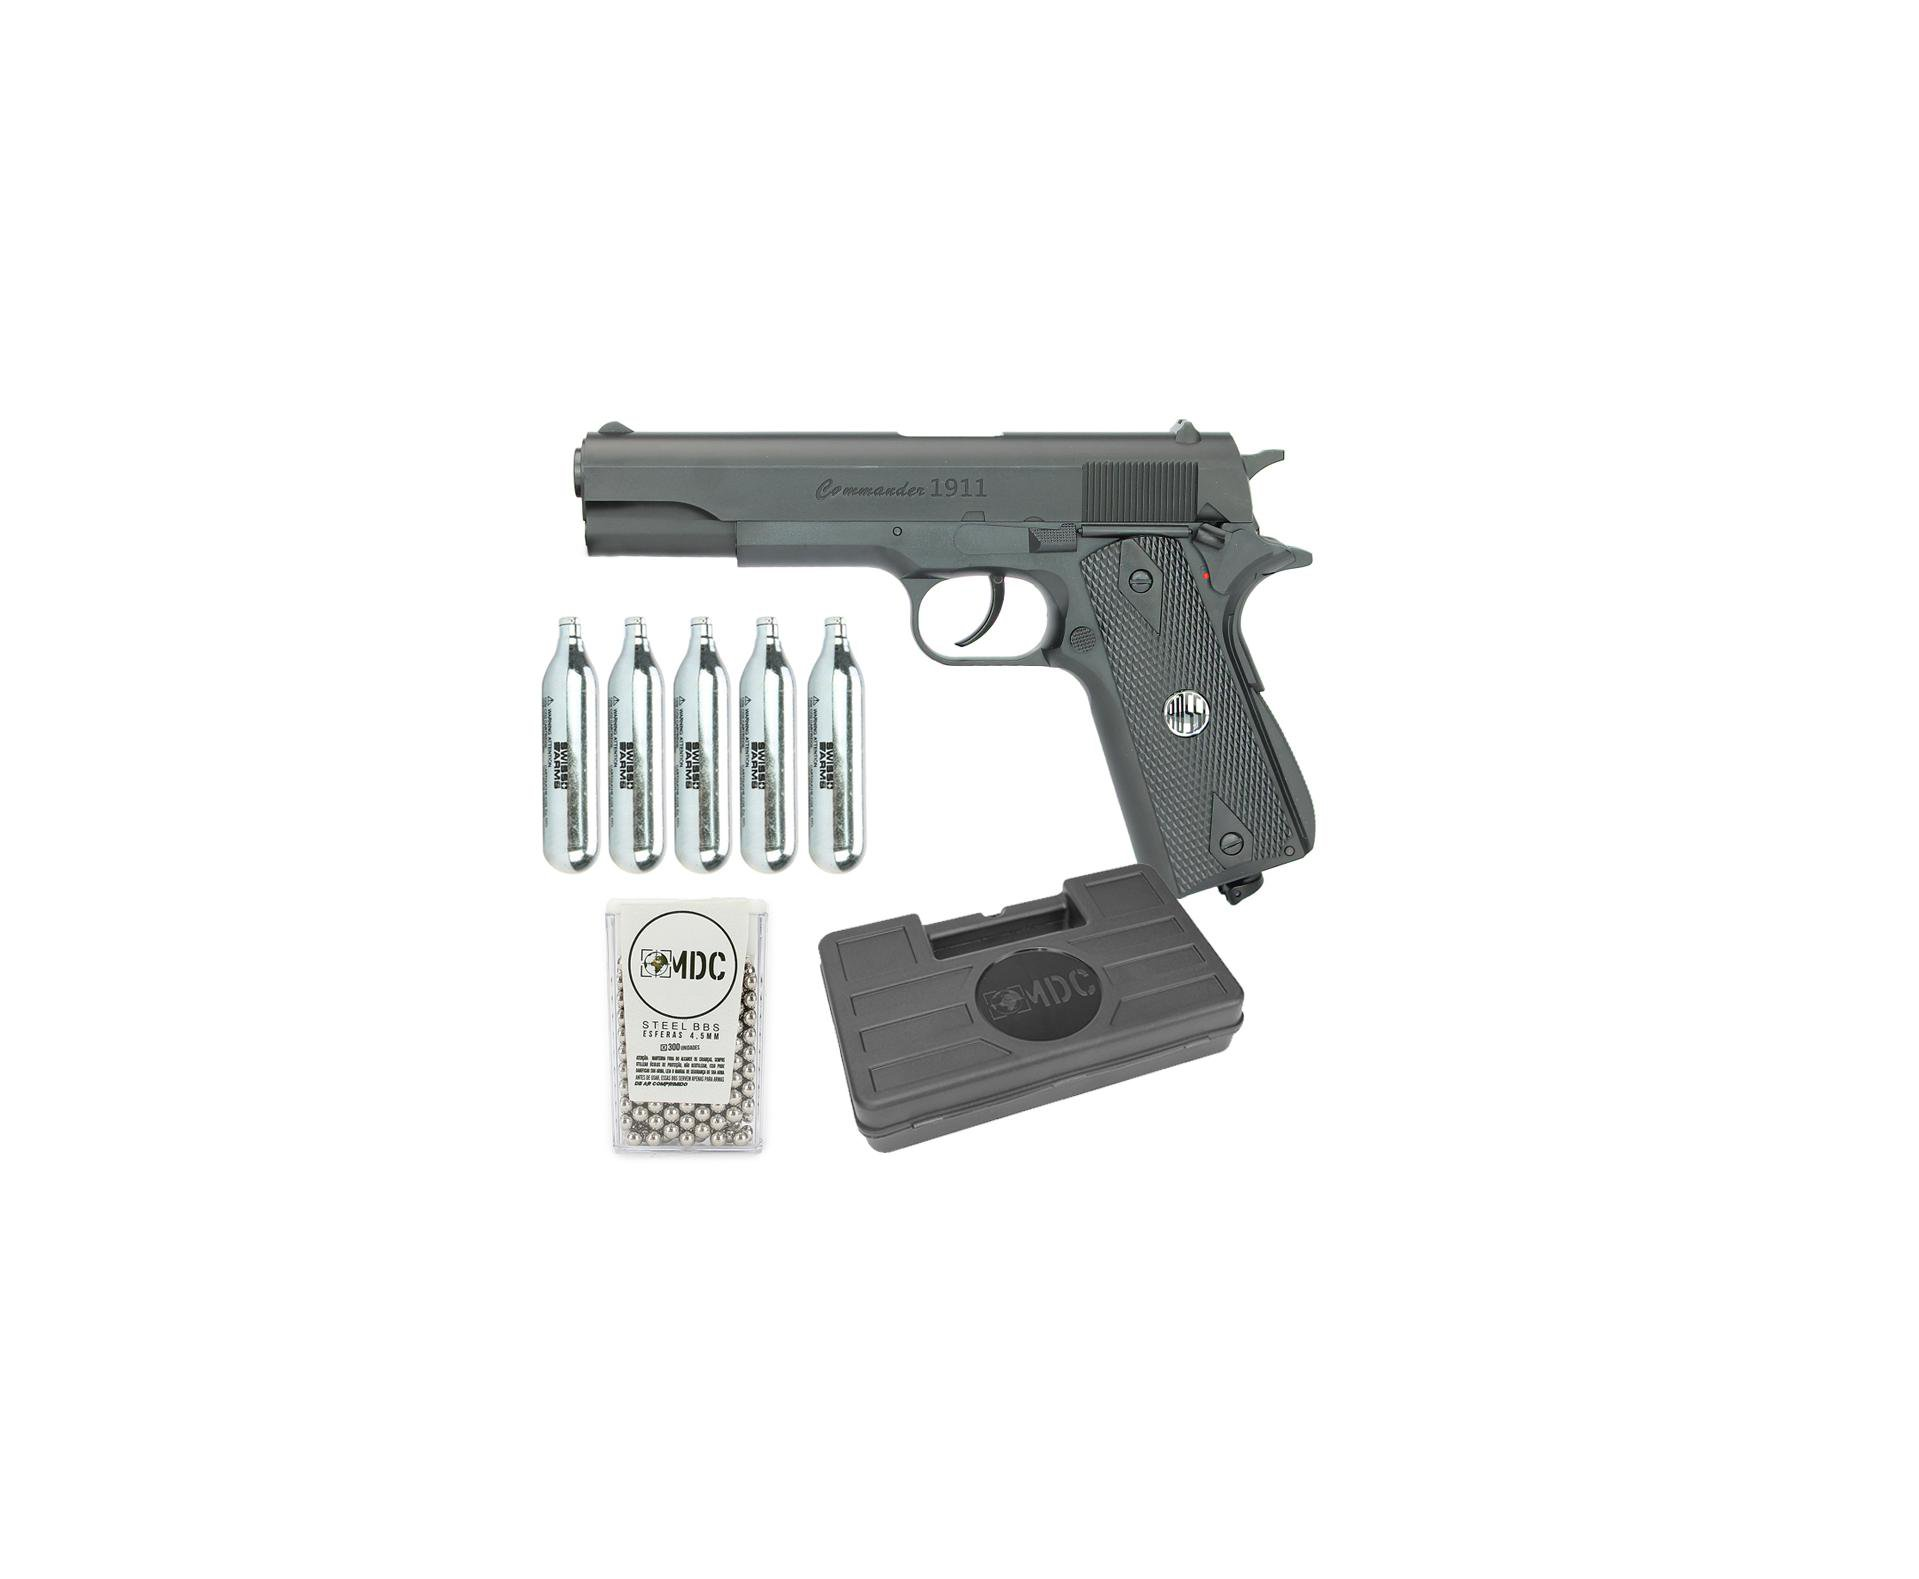 Pistola De Pressão Commander 1911 W125b Co2 Cal 4,5mm Win Gun Rossi + Case + Co2 + Munição